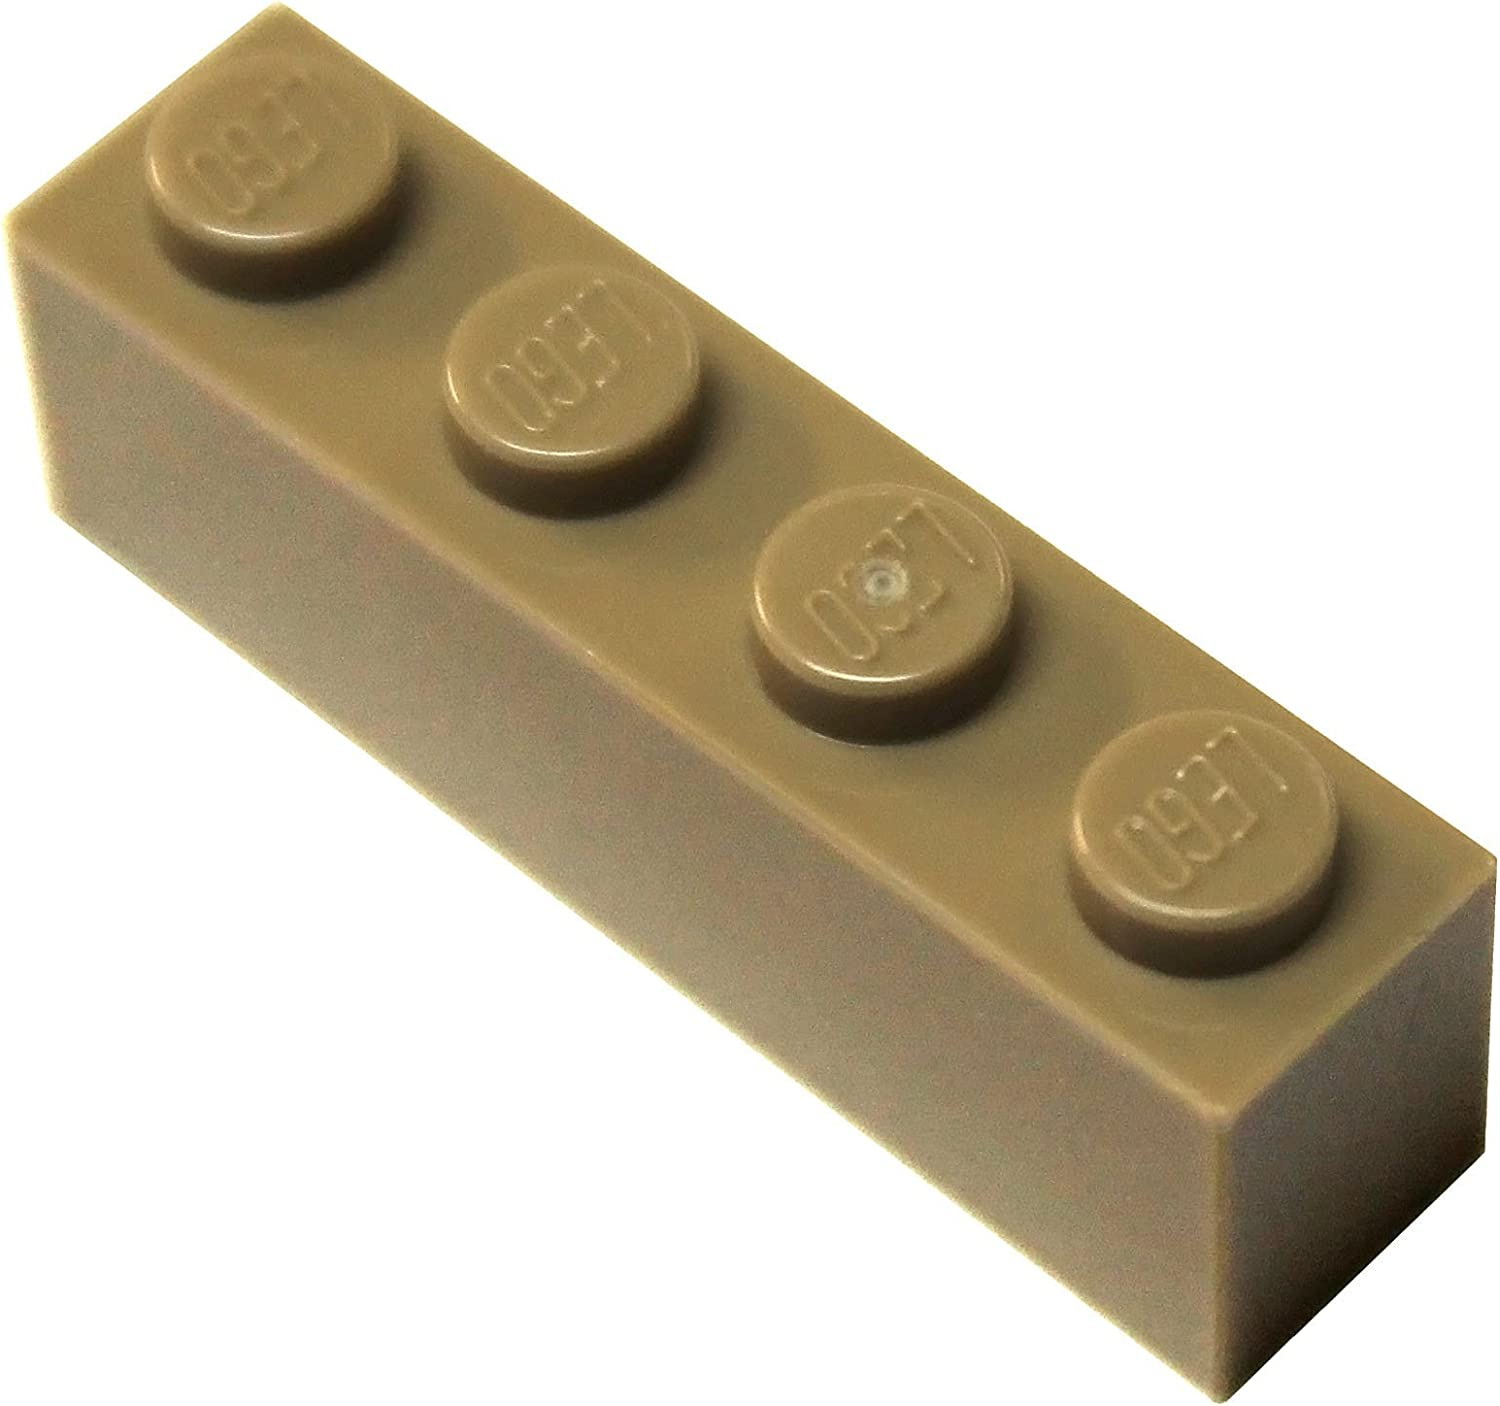 LEGO Parts and Pieces: Dark Tan (Sand Yellow) 1x4 Brick x100